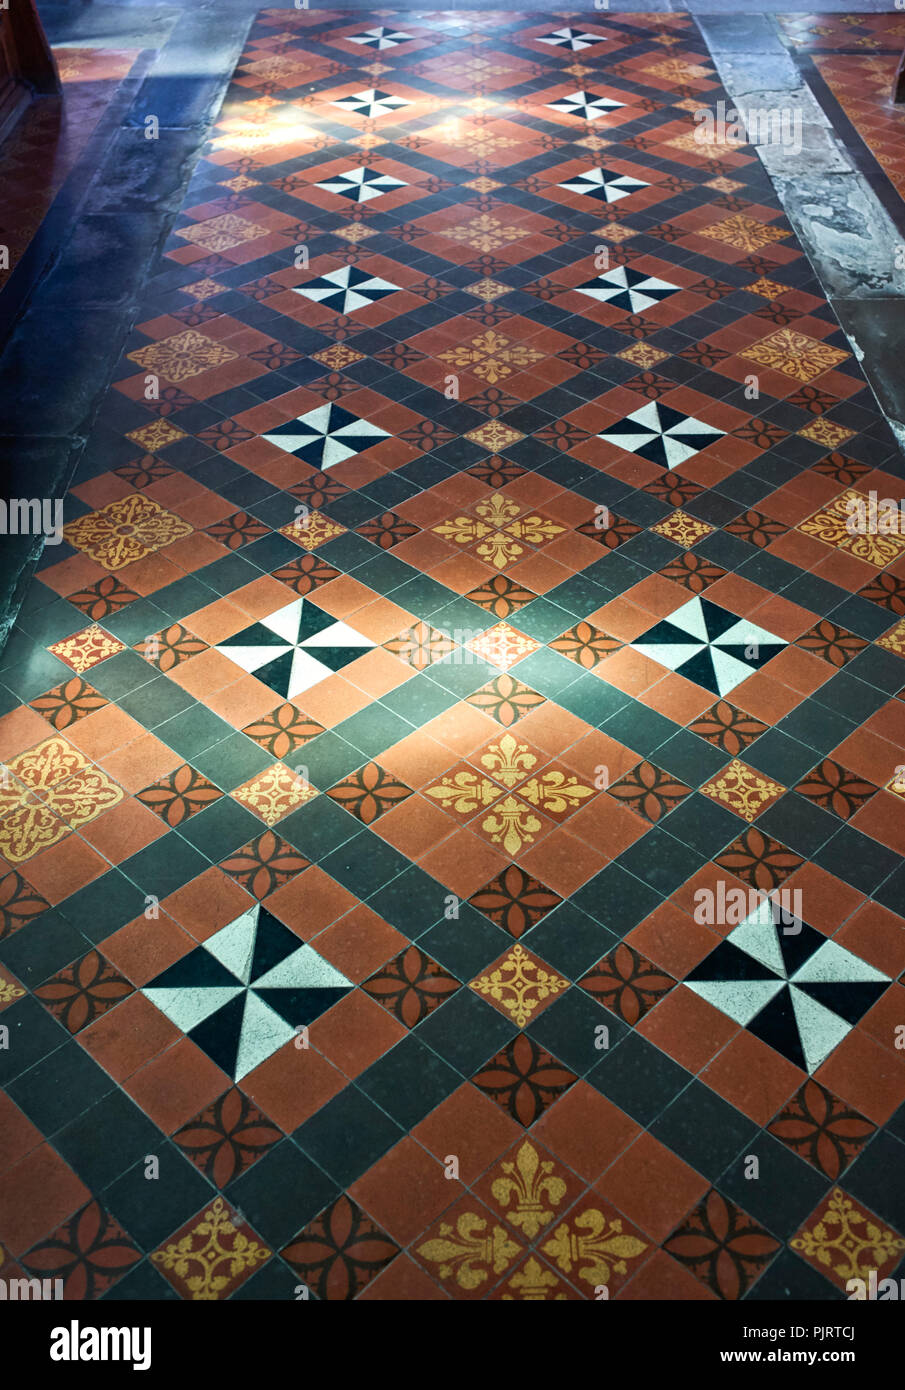 Floor tiles at St Mary and St Chad church, Brewood, South Staffordshire - Stock Image